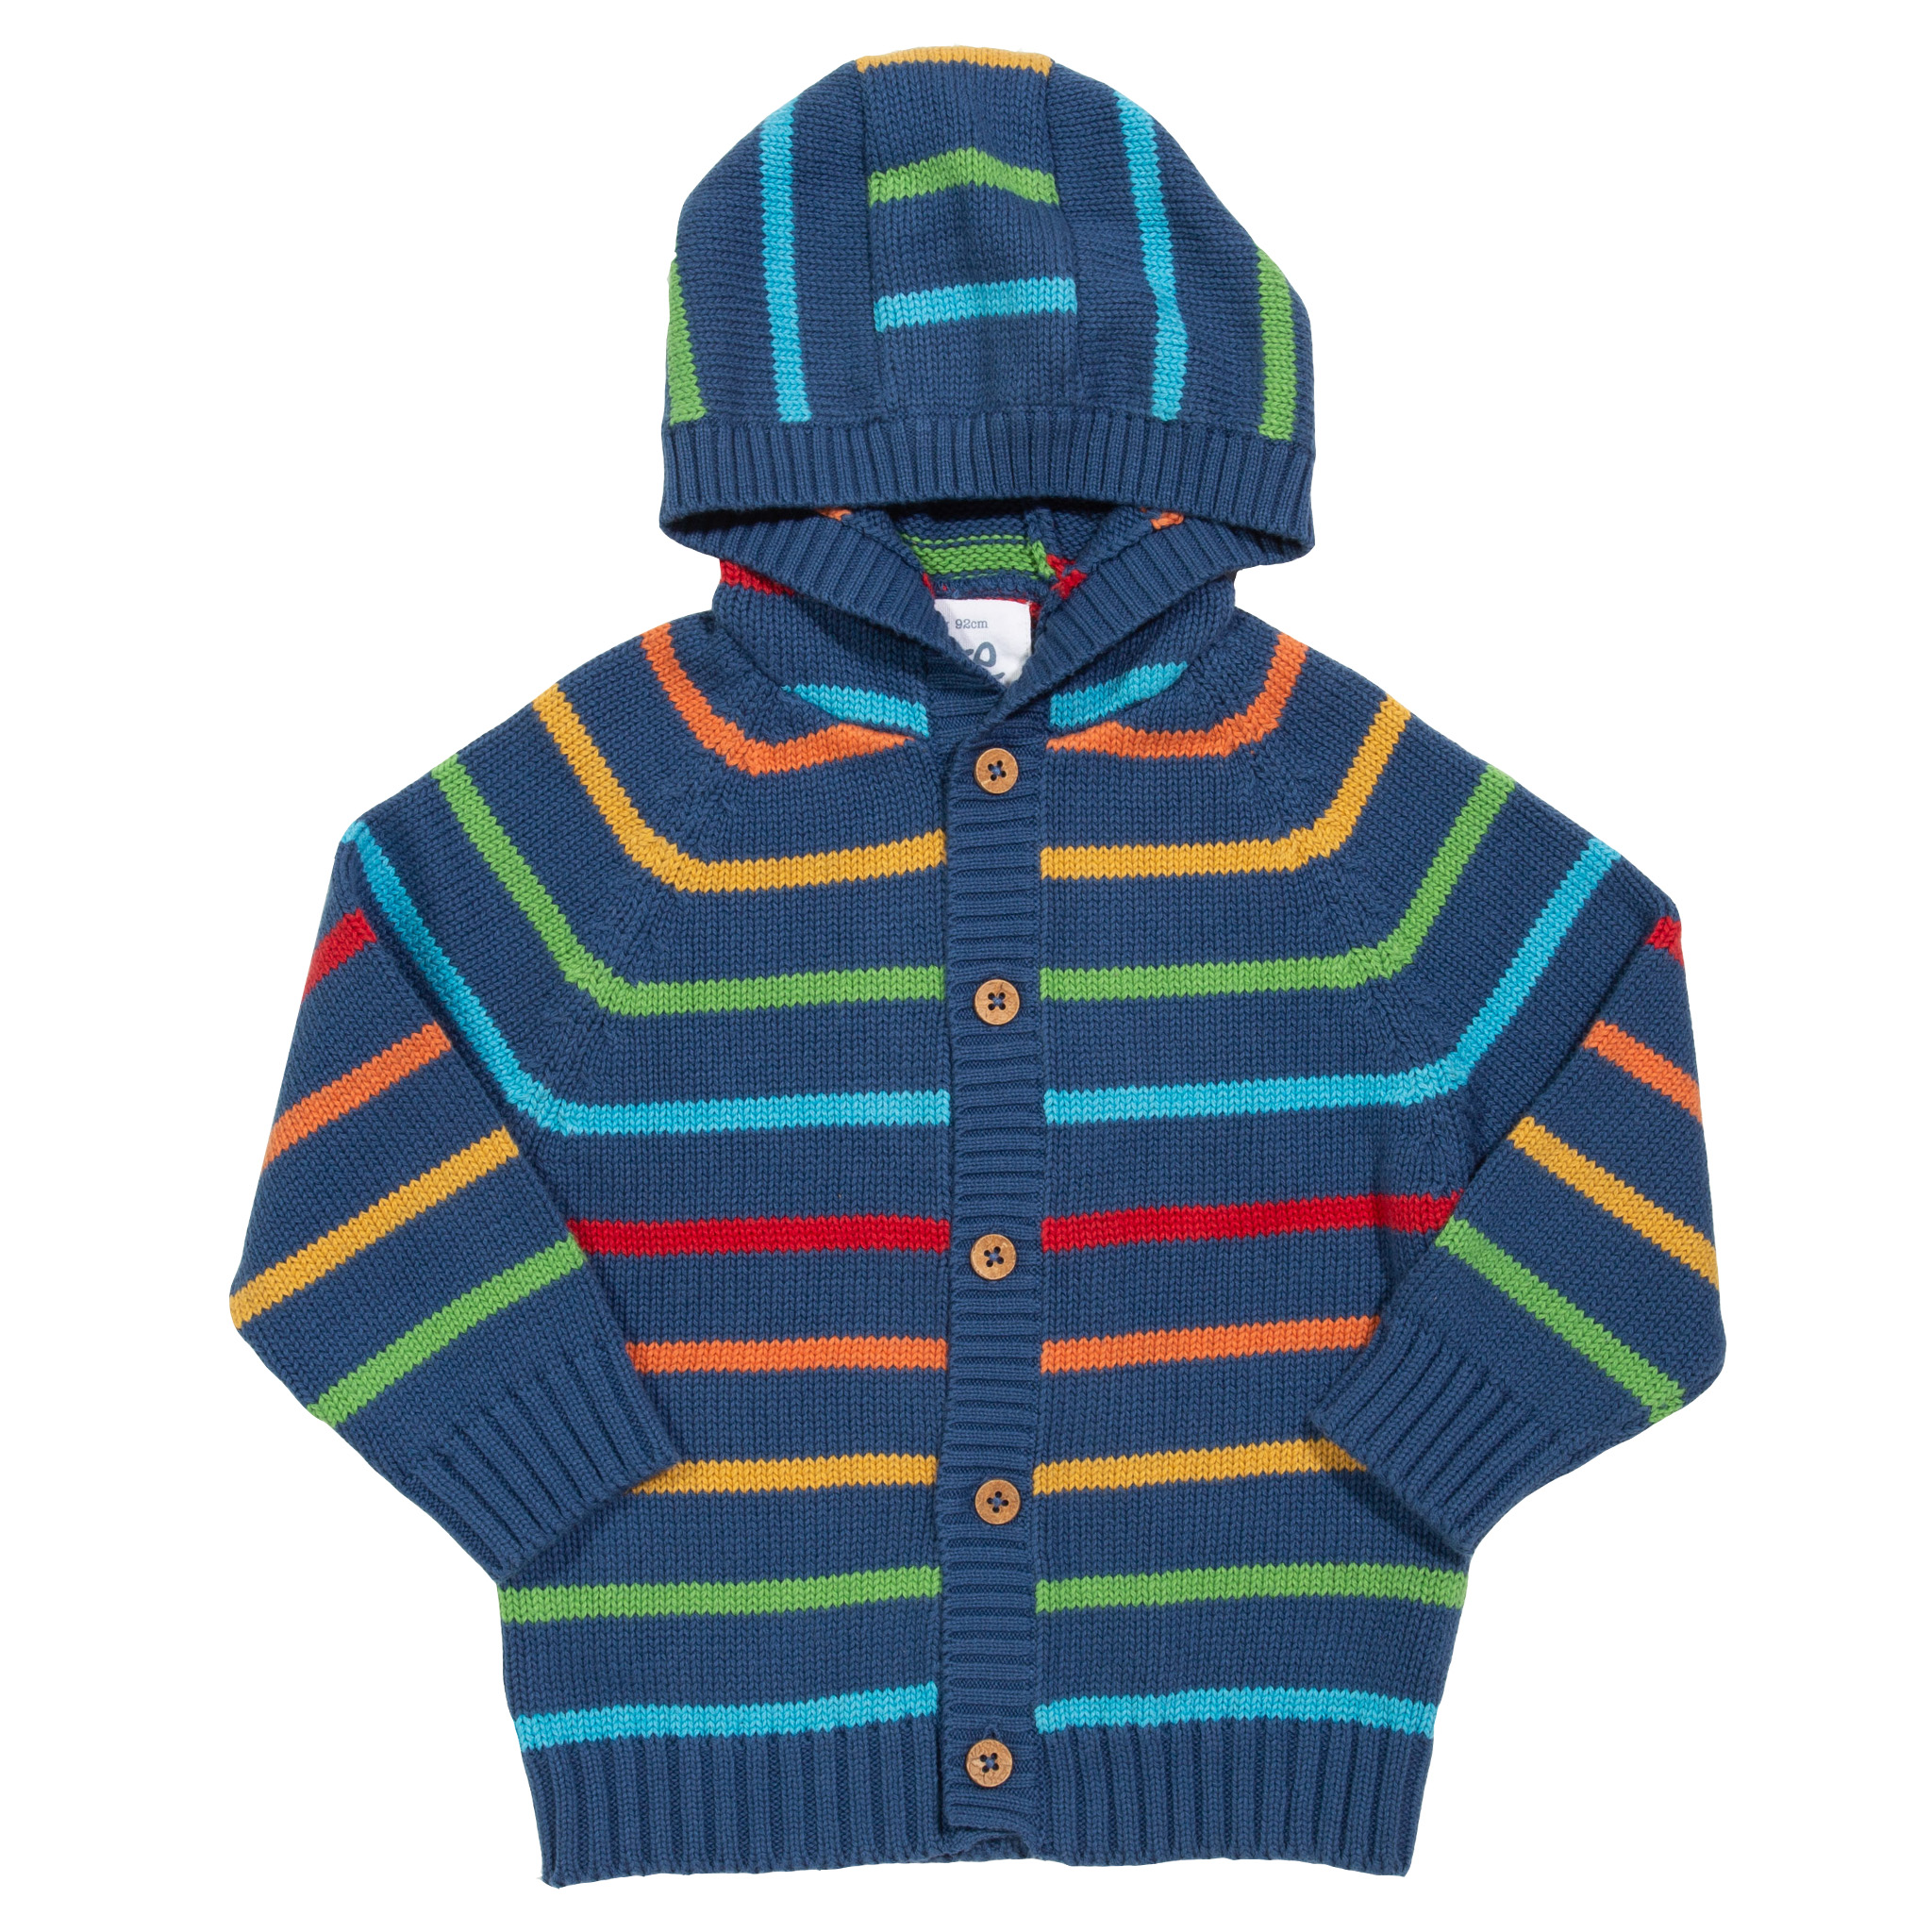 SALE £27.20 Kite Stripy Knit Hoody (was £34.00)